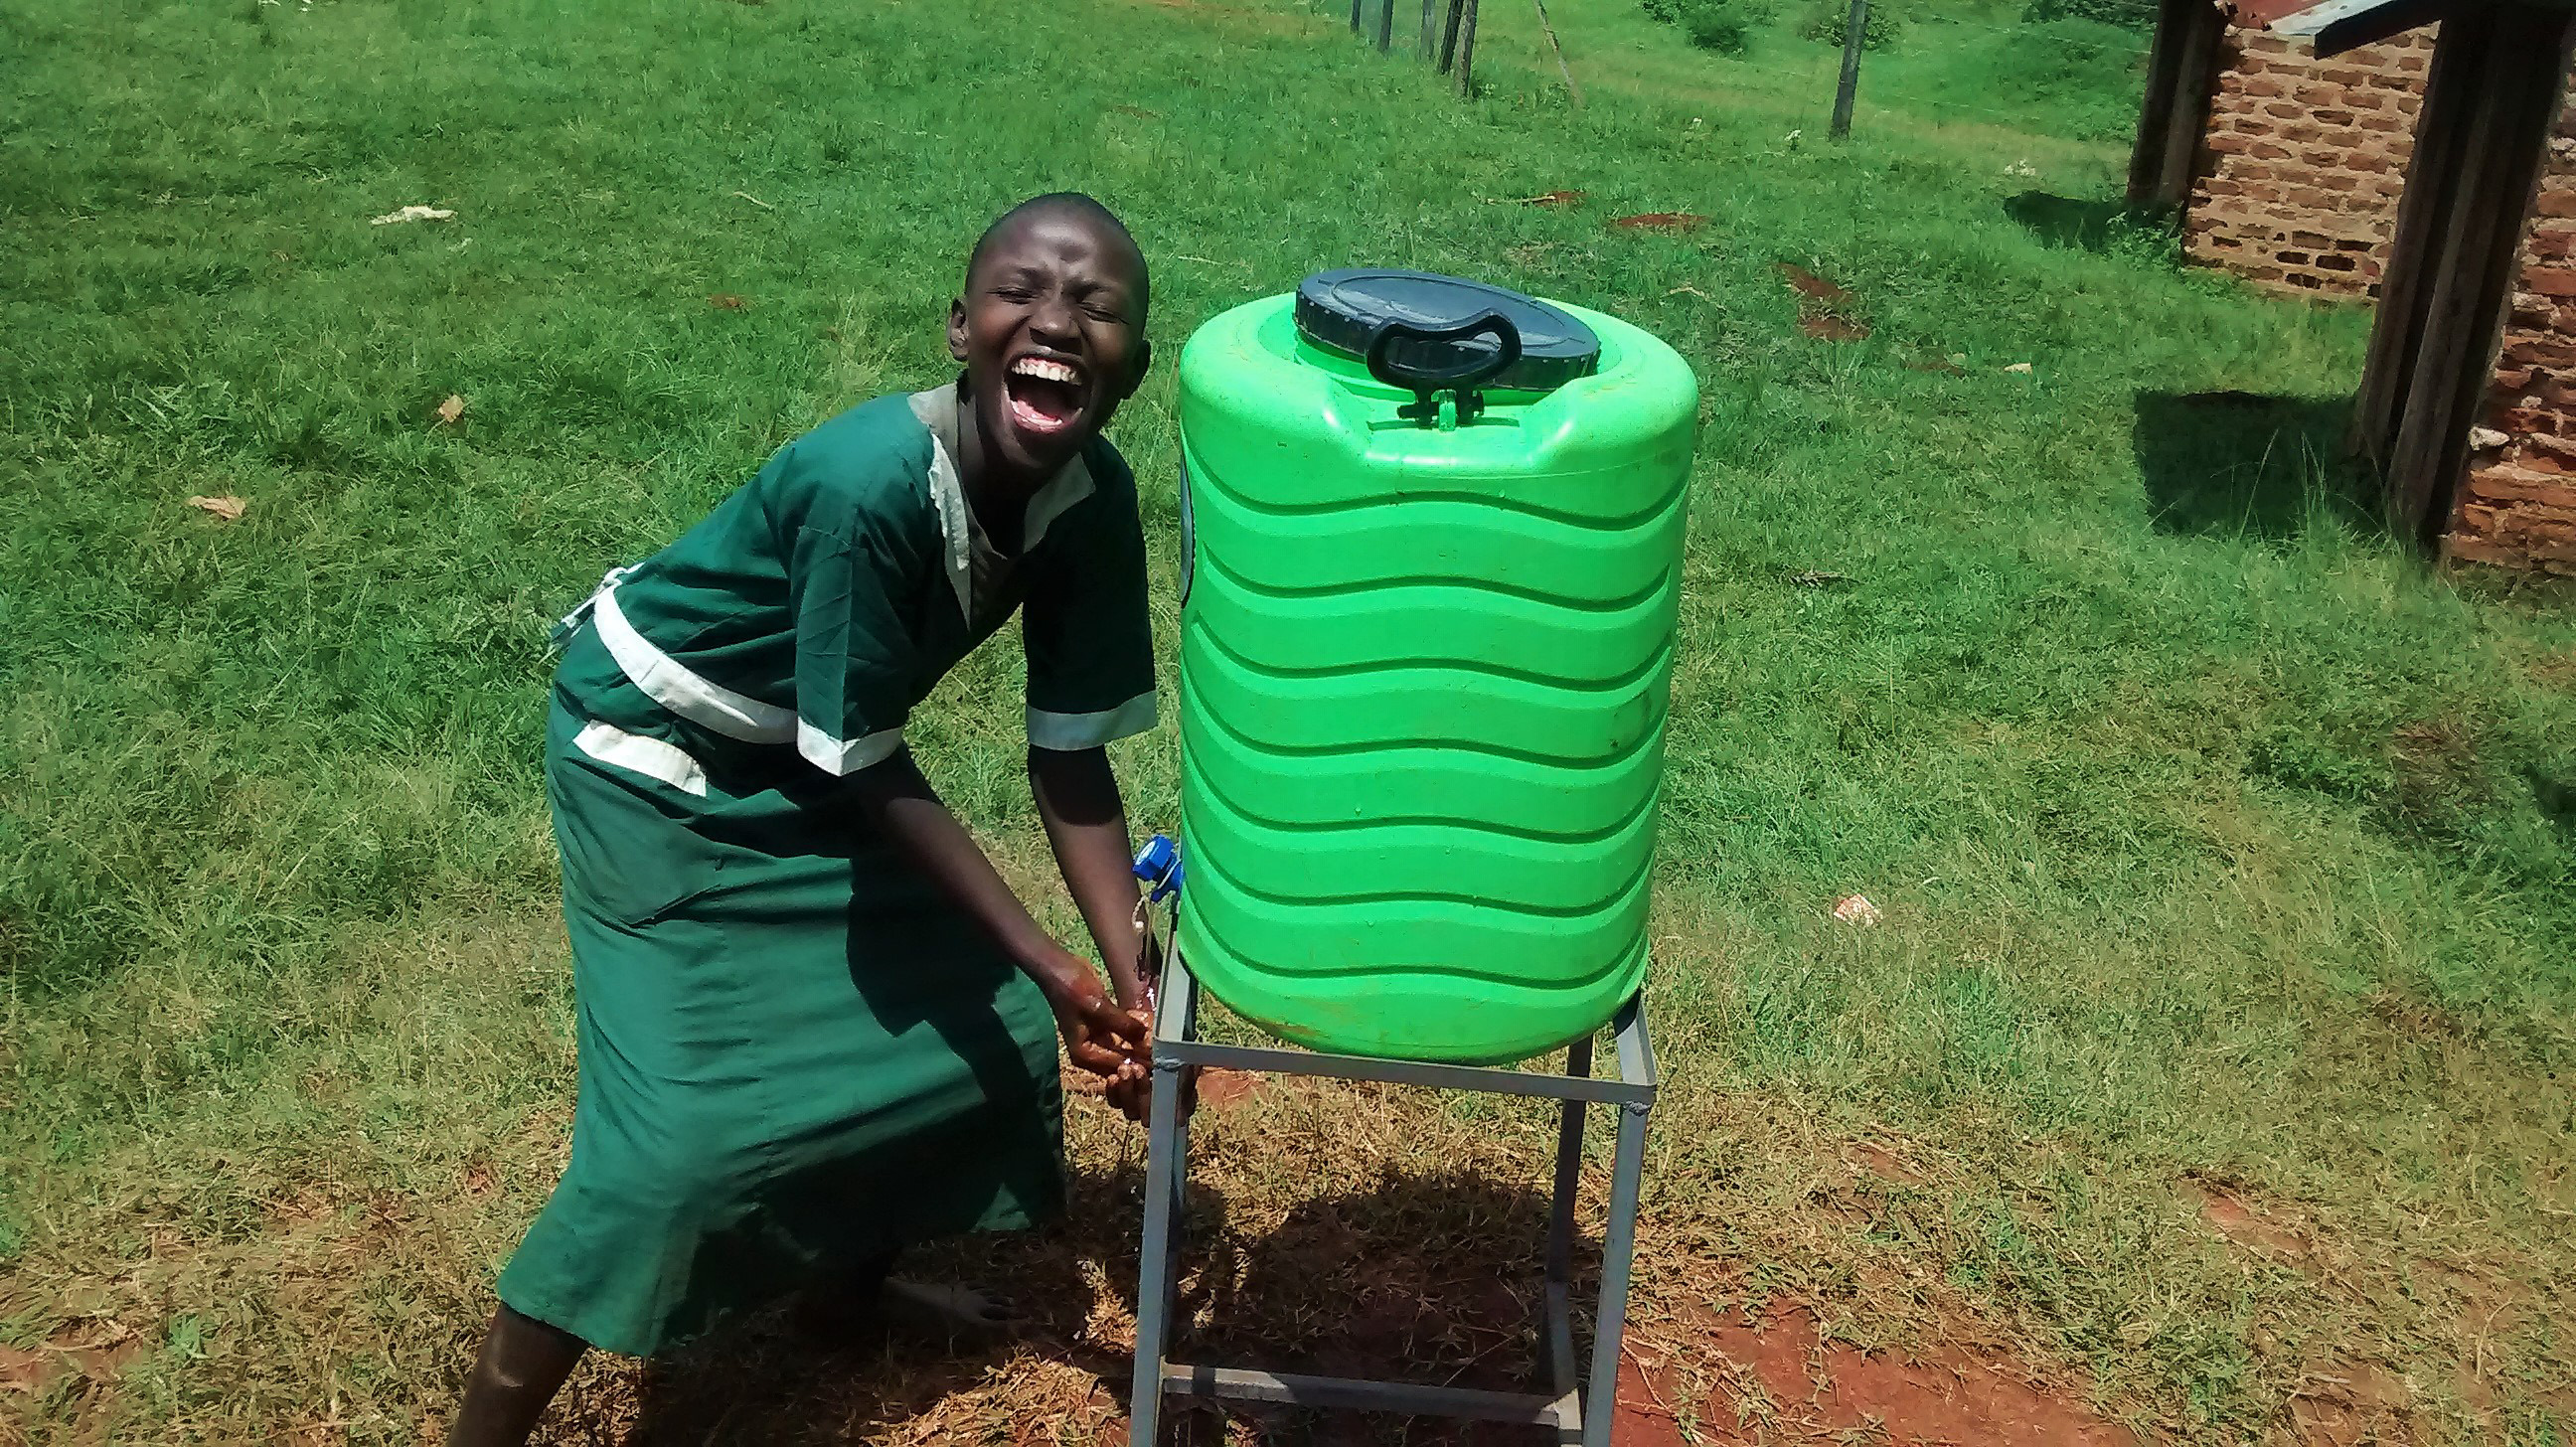 13 kenya4666 hand-washing stations